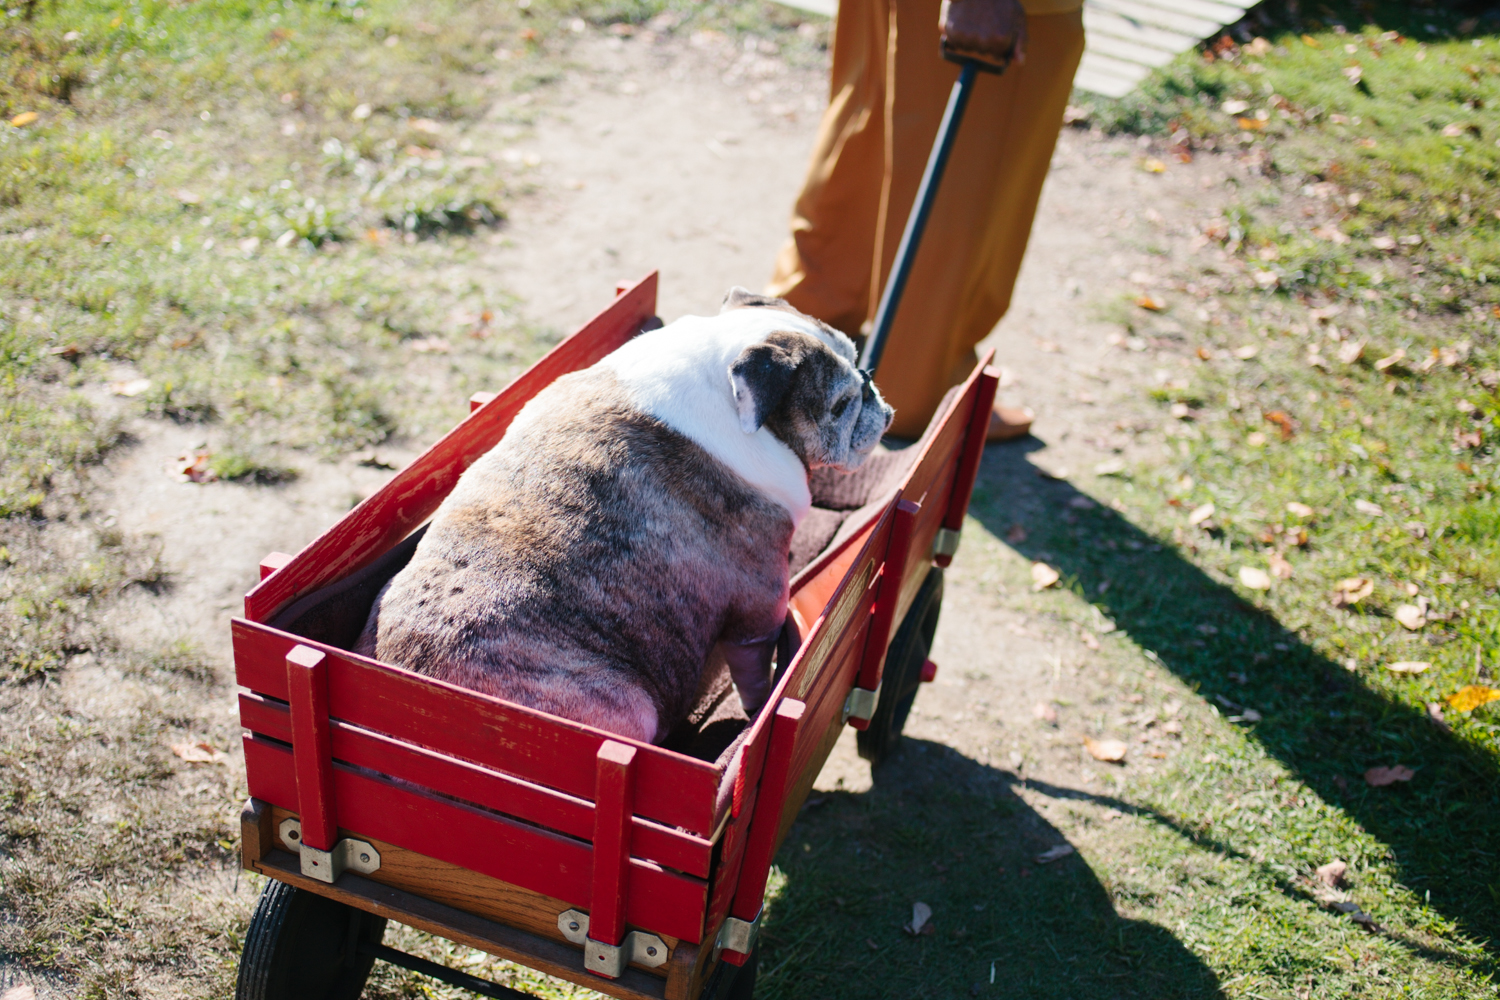 Apparently no wedding is complete without a cute dog in a wagon!